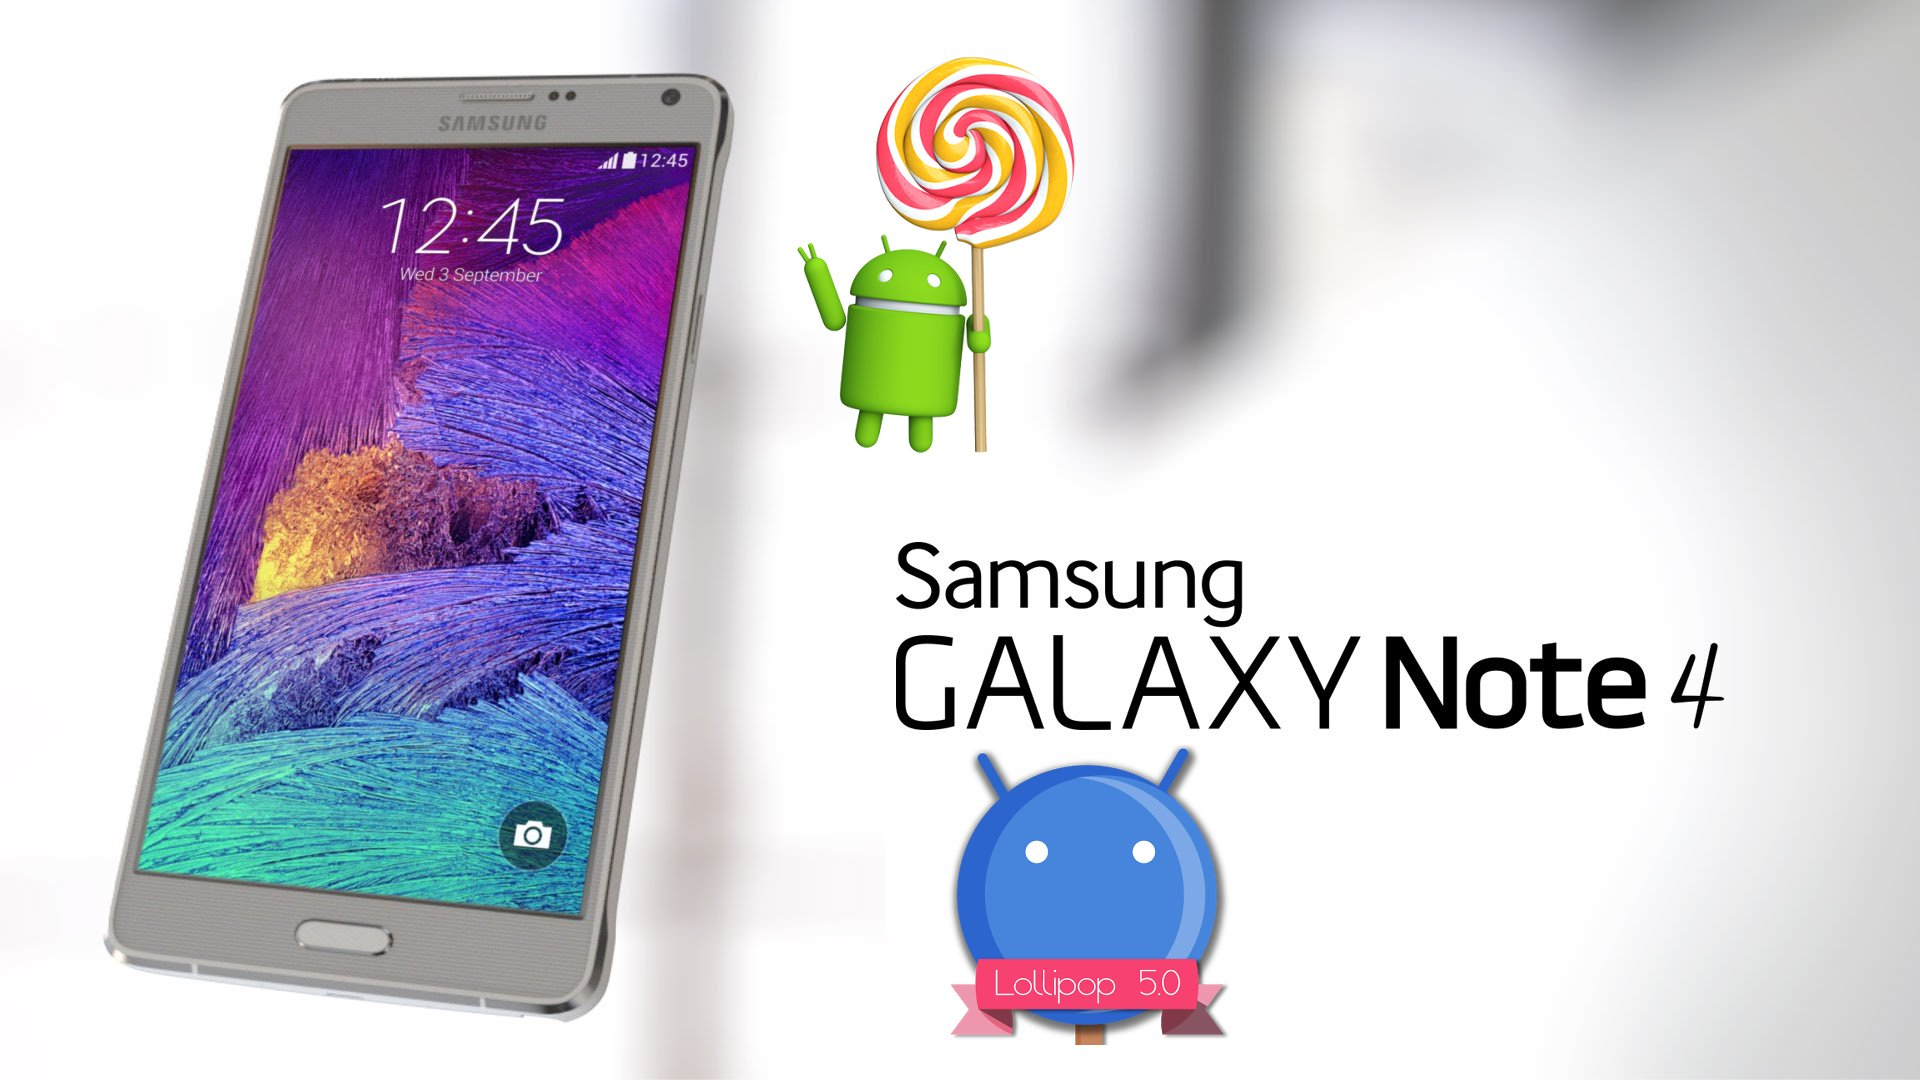 Android 5.0 Lollipop Update Ready For AT&T Samsung Galaxy Note 4